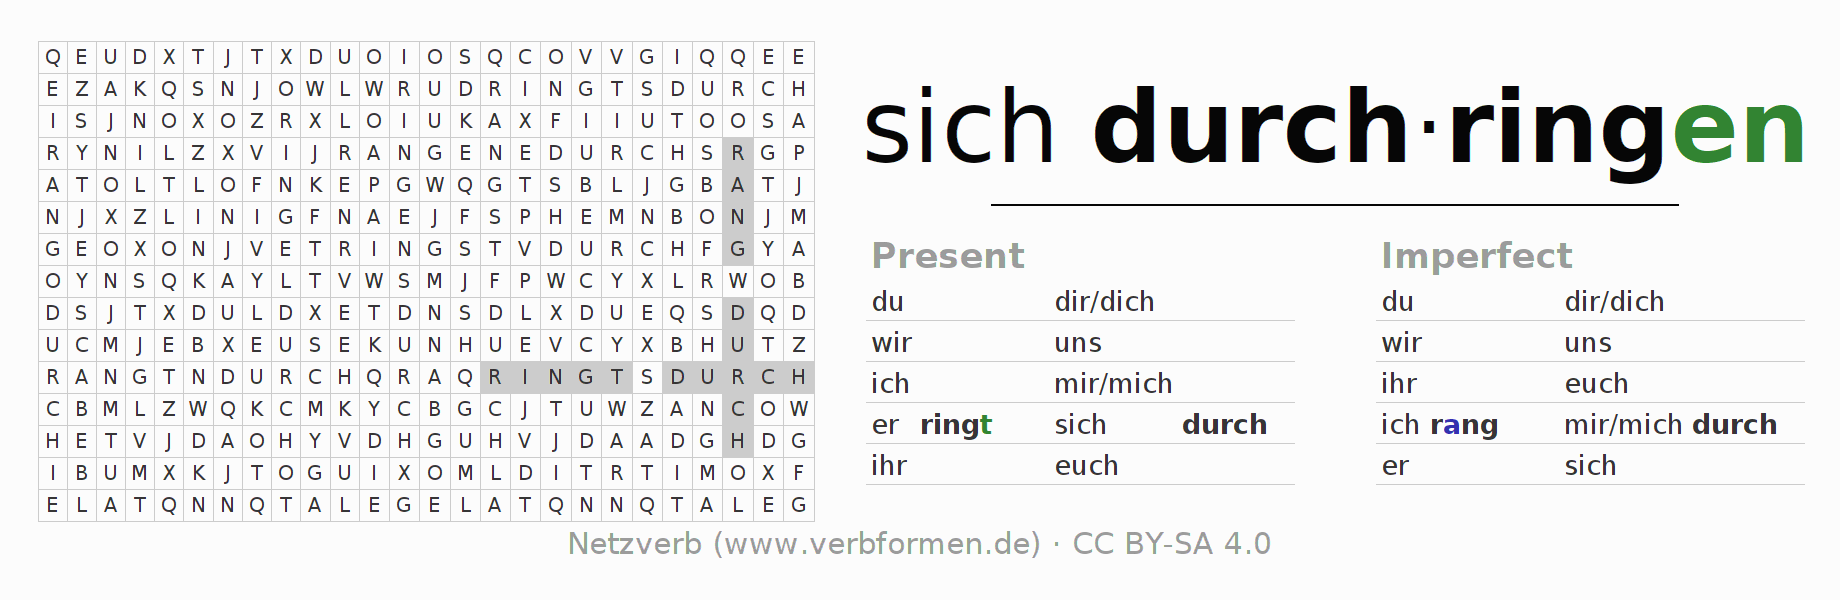 Word search puzzle for the conjugation of the verb sich durchringen